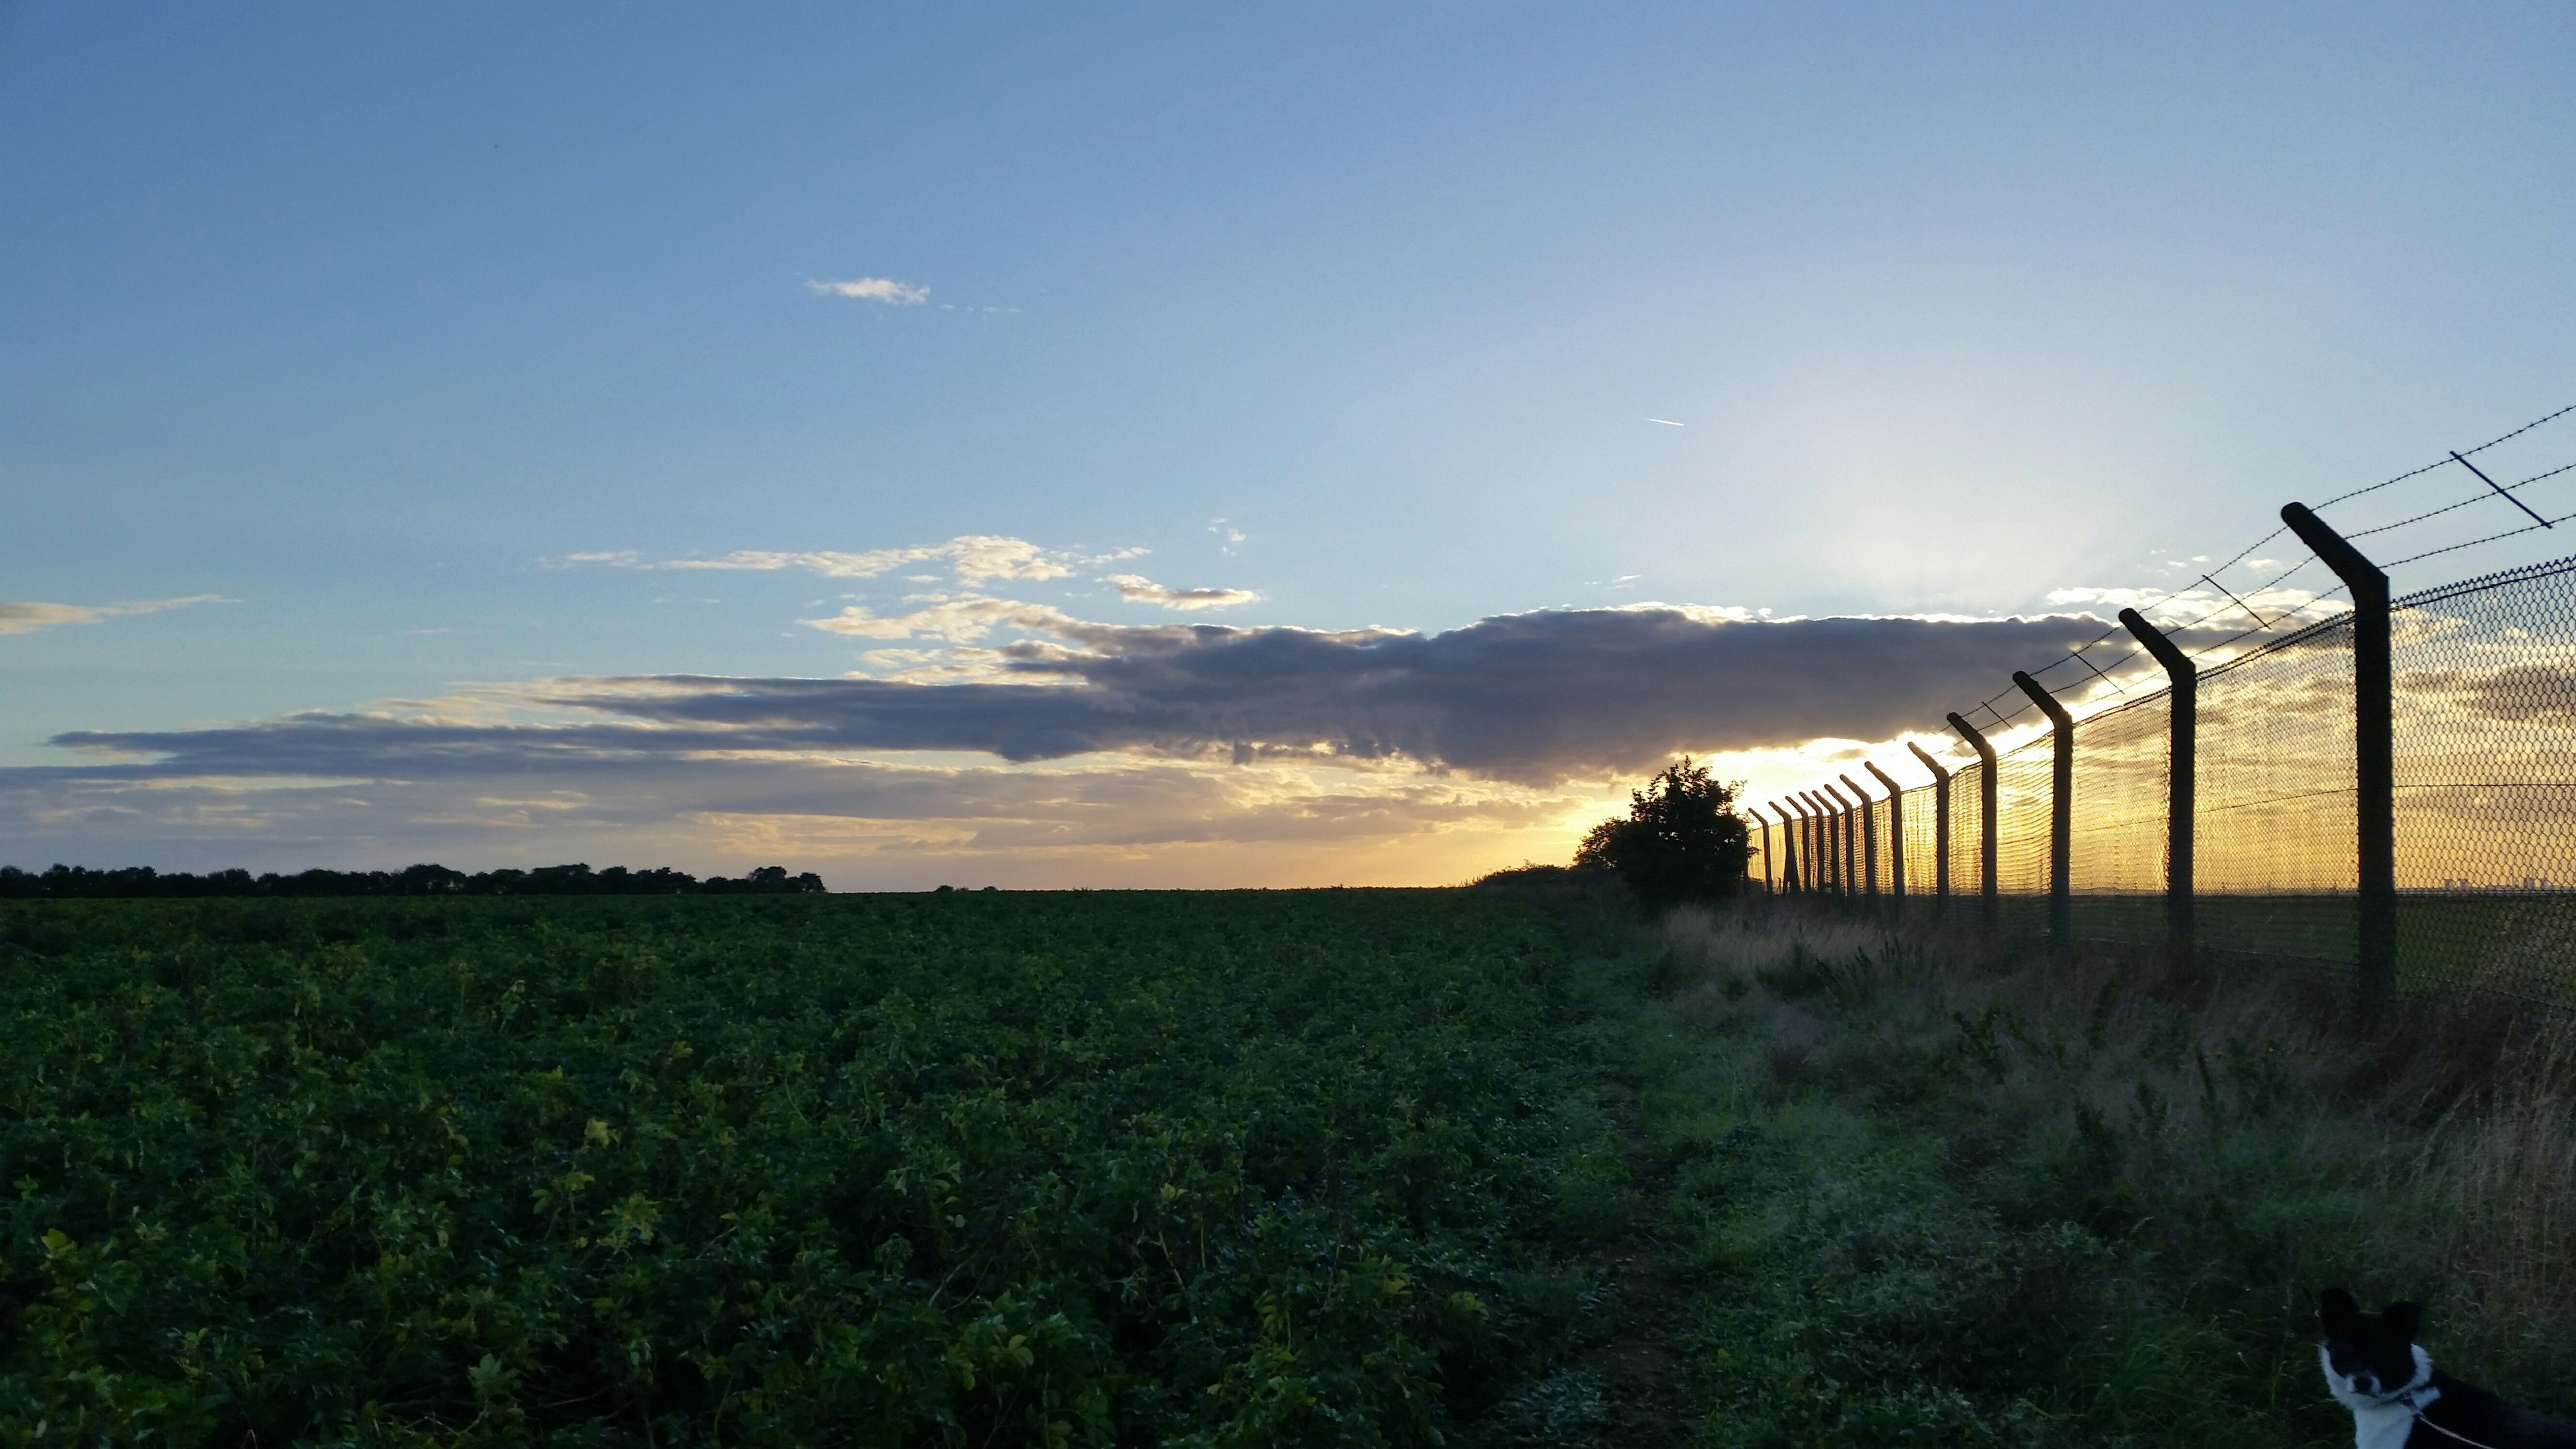 field, landscape, sky, rural scene, tranquil scene, agriculture, tranquility, fence, grass, beauty in nature, nature, scenics, farm, sunset, growth, copy space, grassy, plant, horizon over land, no people